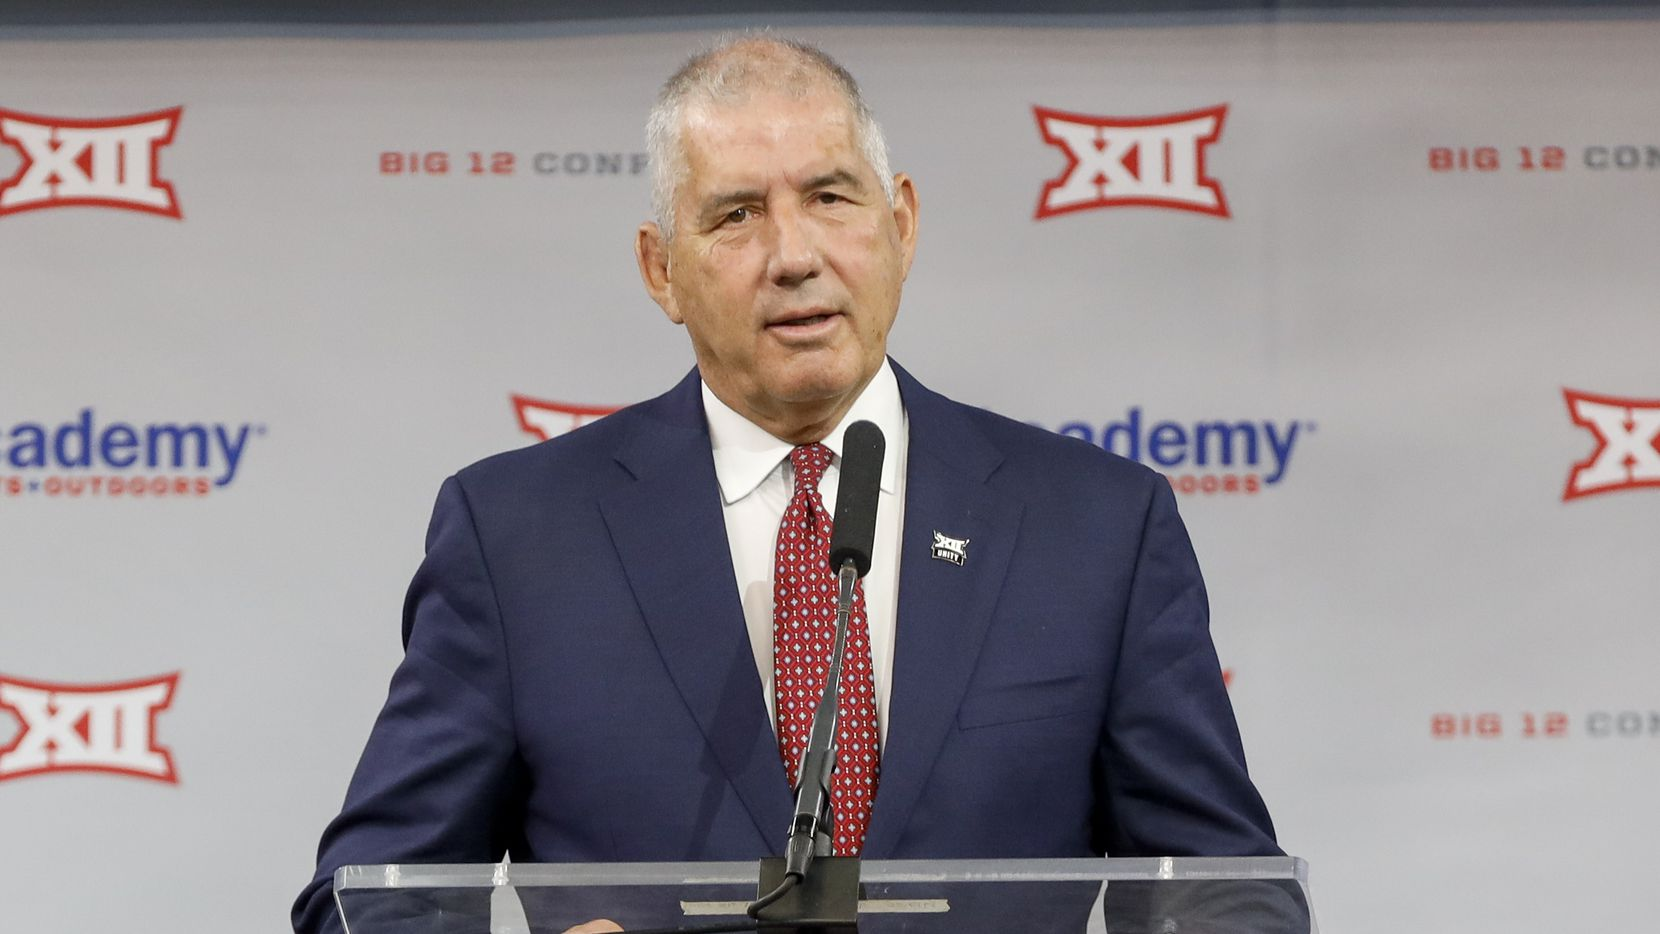 Big 12 Conference commissioner Bob Bowlsby speaks during the Big 12 Conference Media Days at AT&T Stadium on Wednesday, July 14, 2021, in Arlington. (Elias Valverde II/The Dallas Morning News)